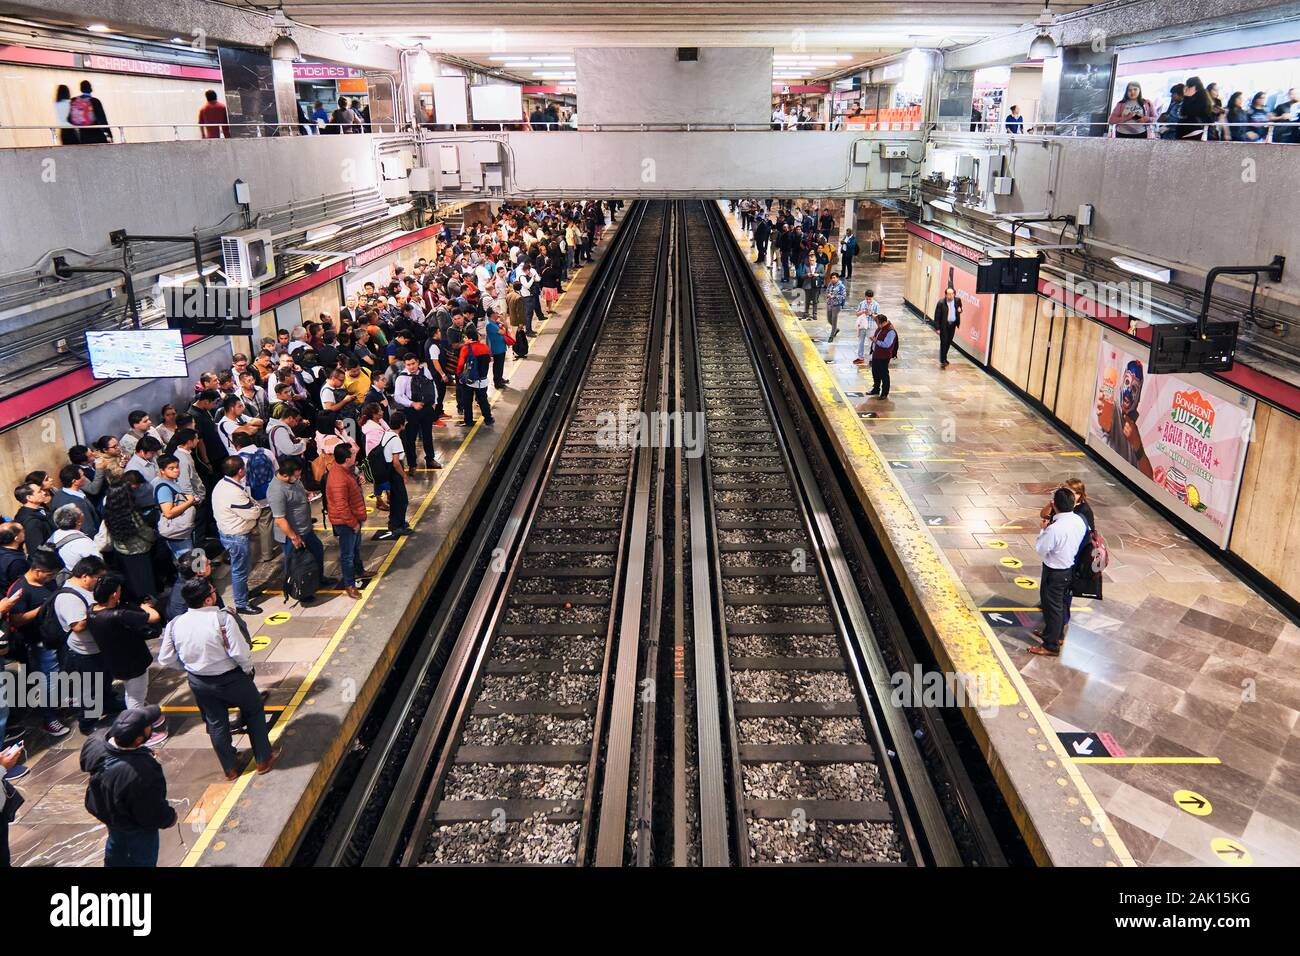 Mexico City, October 16, 2019 - People wait for metro at Chapultepec station in Mexico City during rush hour after the work. Stock Photo